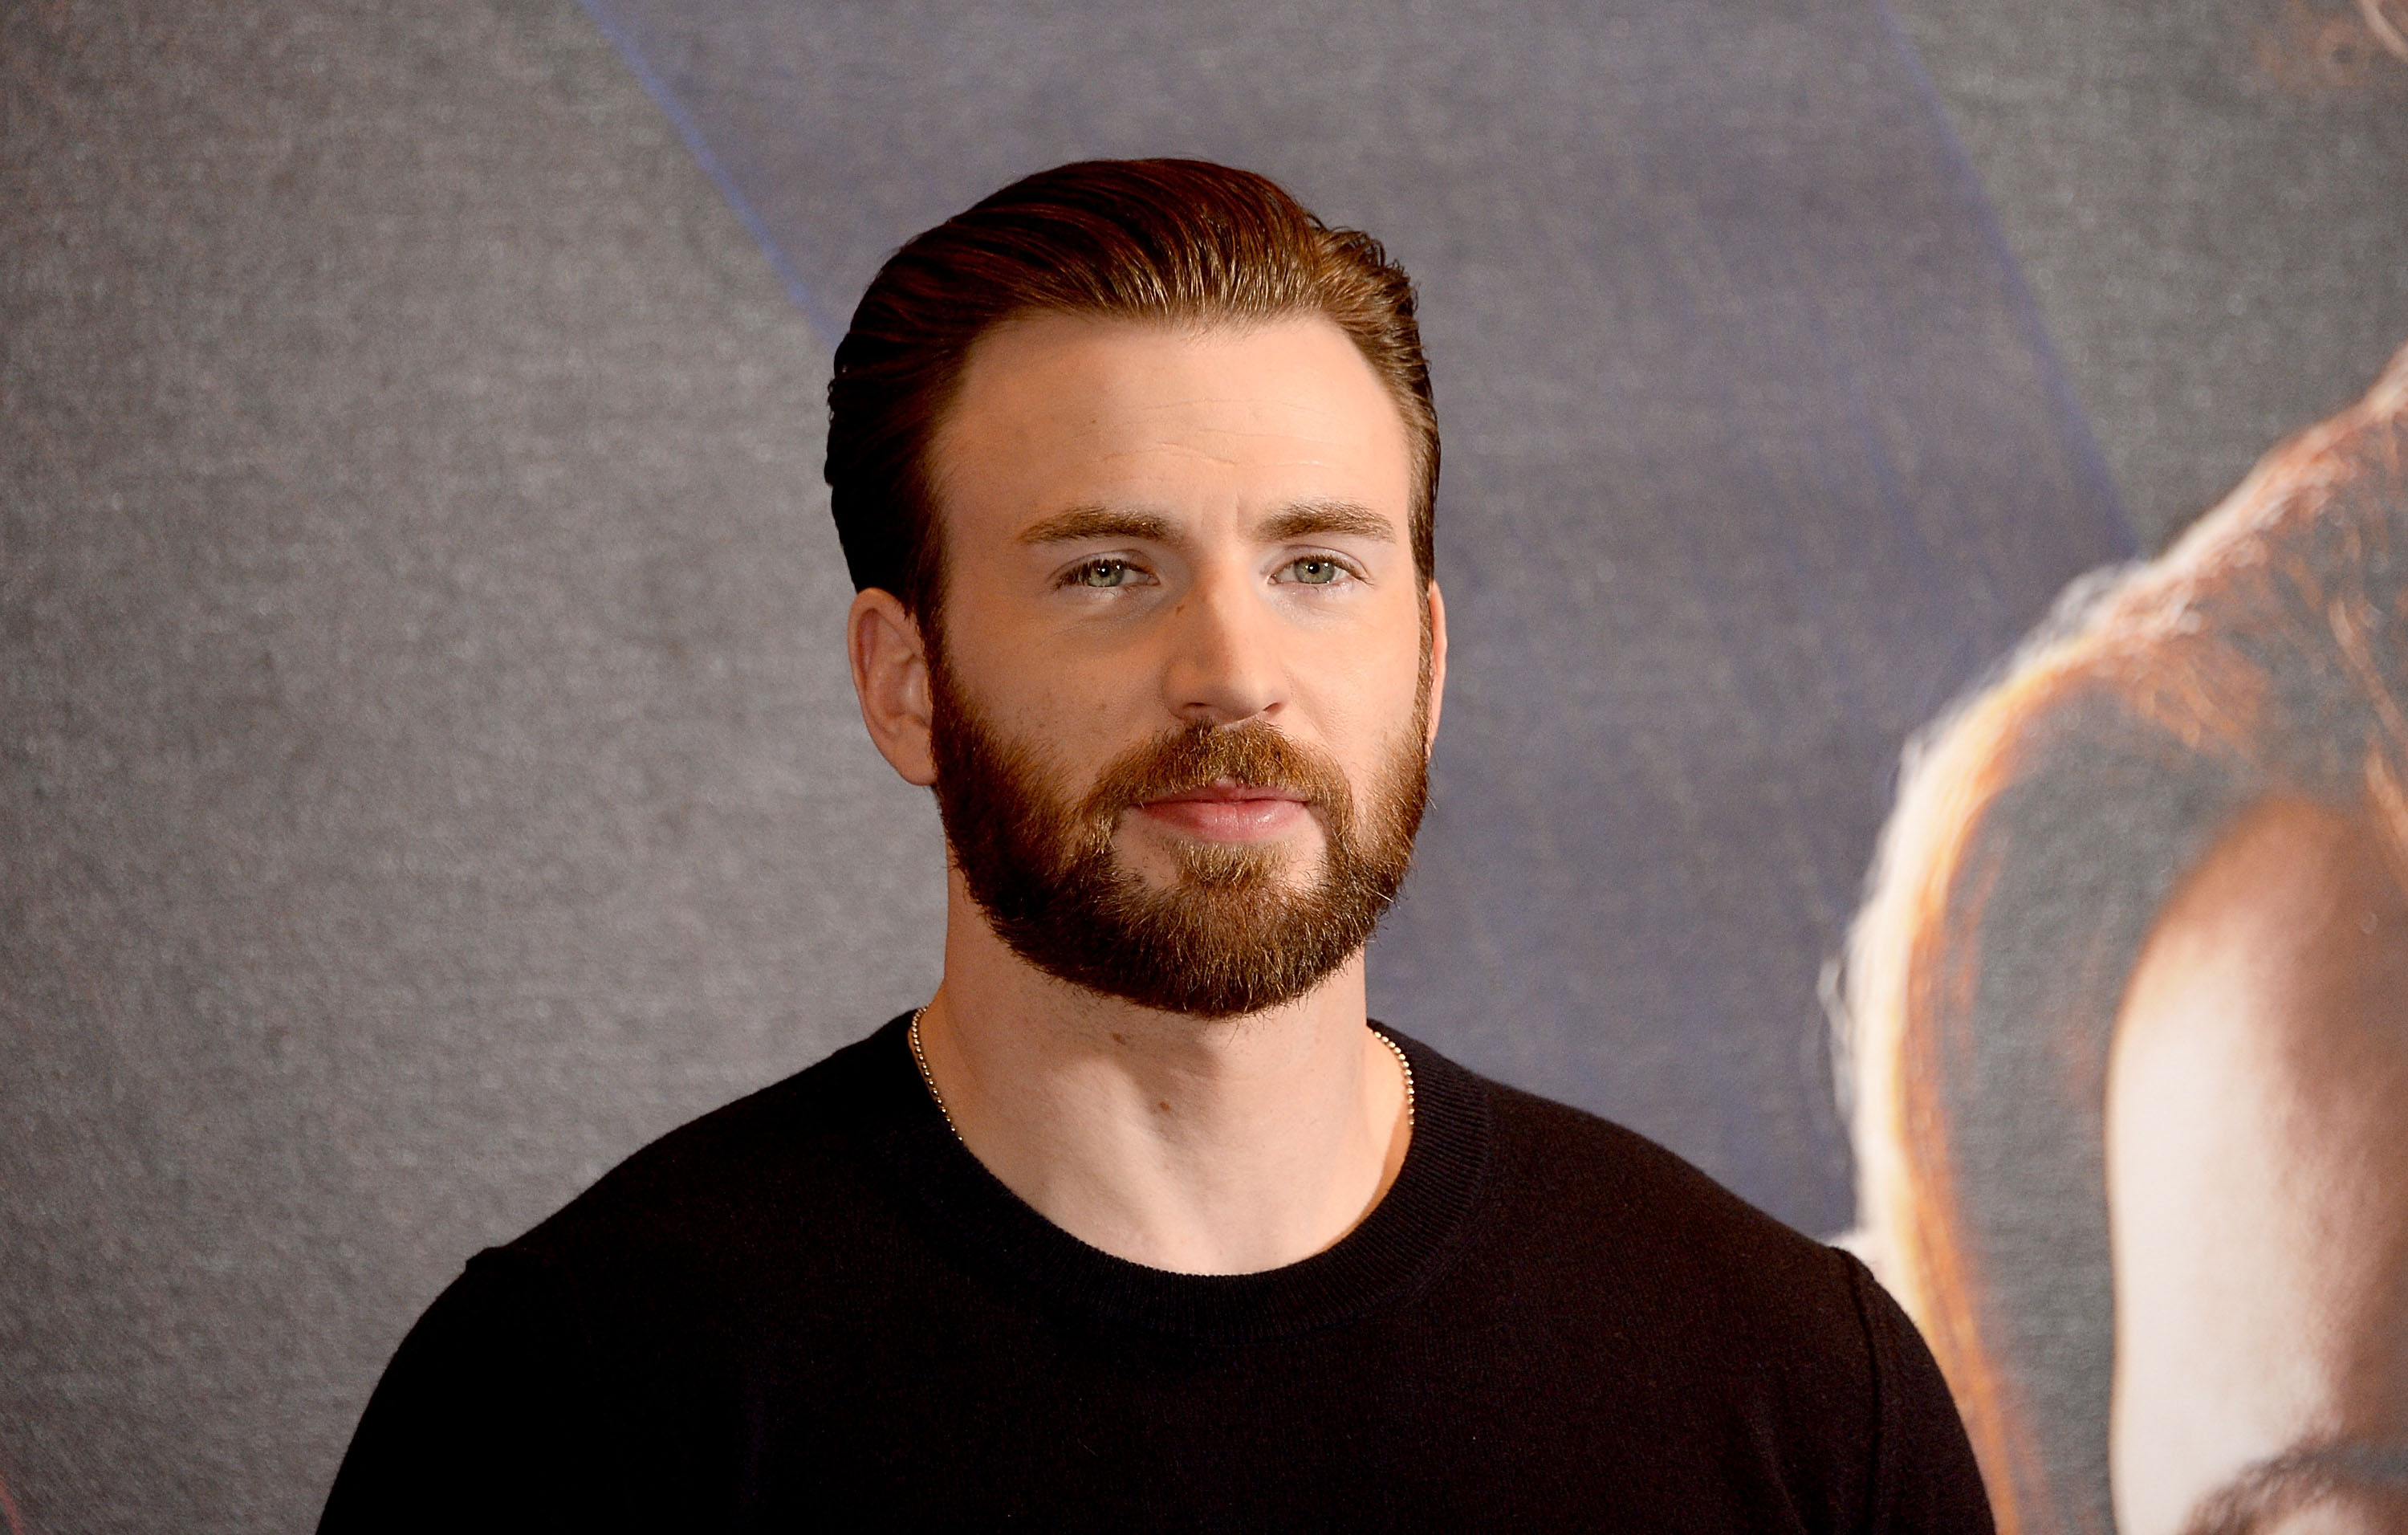 LONDON, ENGLAND - APRIL 25:  Chris Evans poses at a photocall for  Captain America: Civil War  at The Corinthia Hotel London on April 25, 2016 in London, England.  (Photo by David M. Benett/Dave Benett/WireImage)